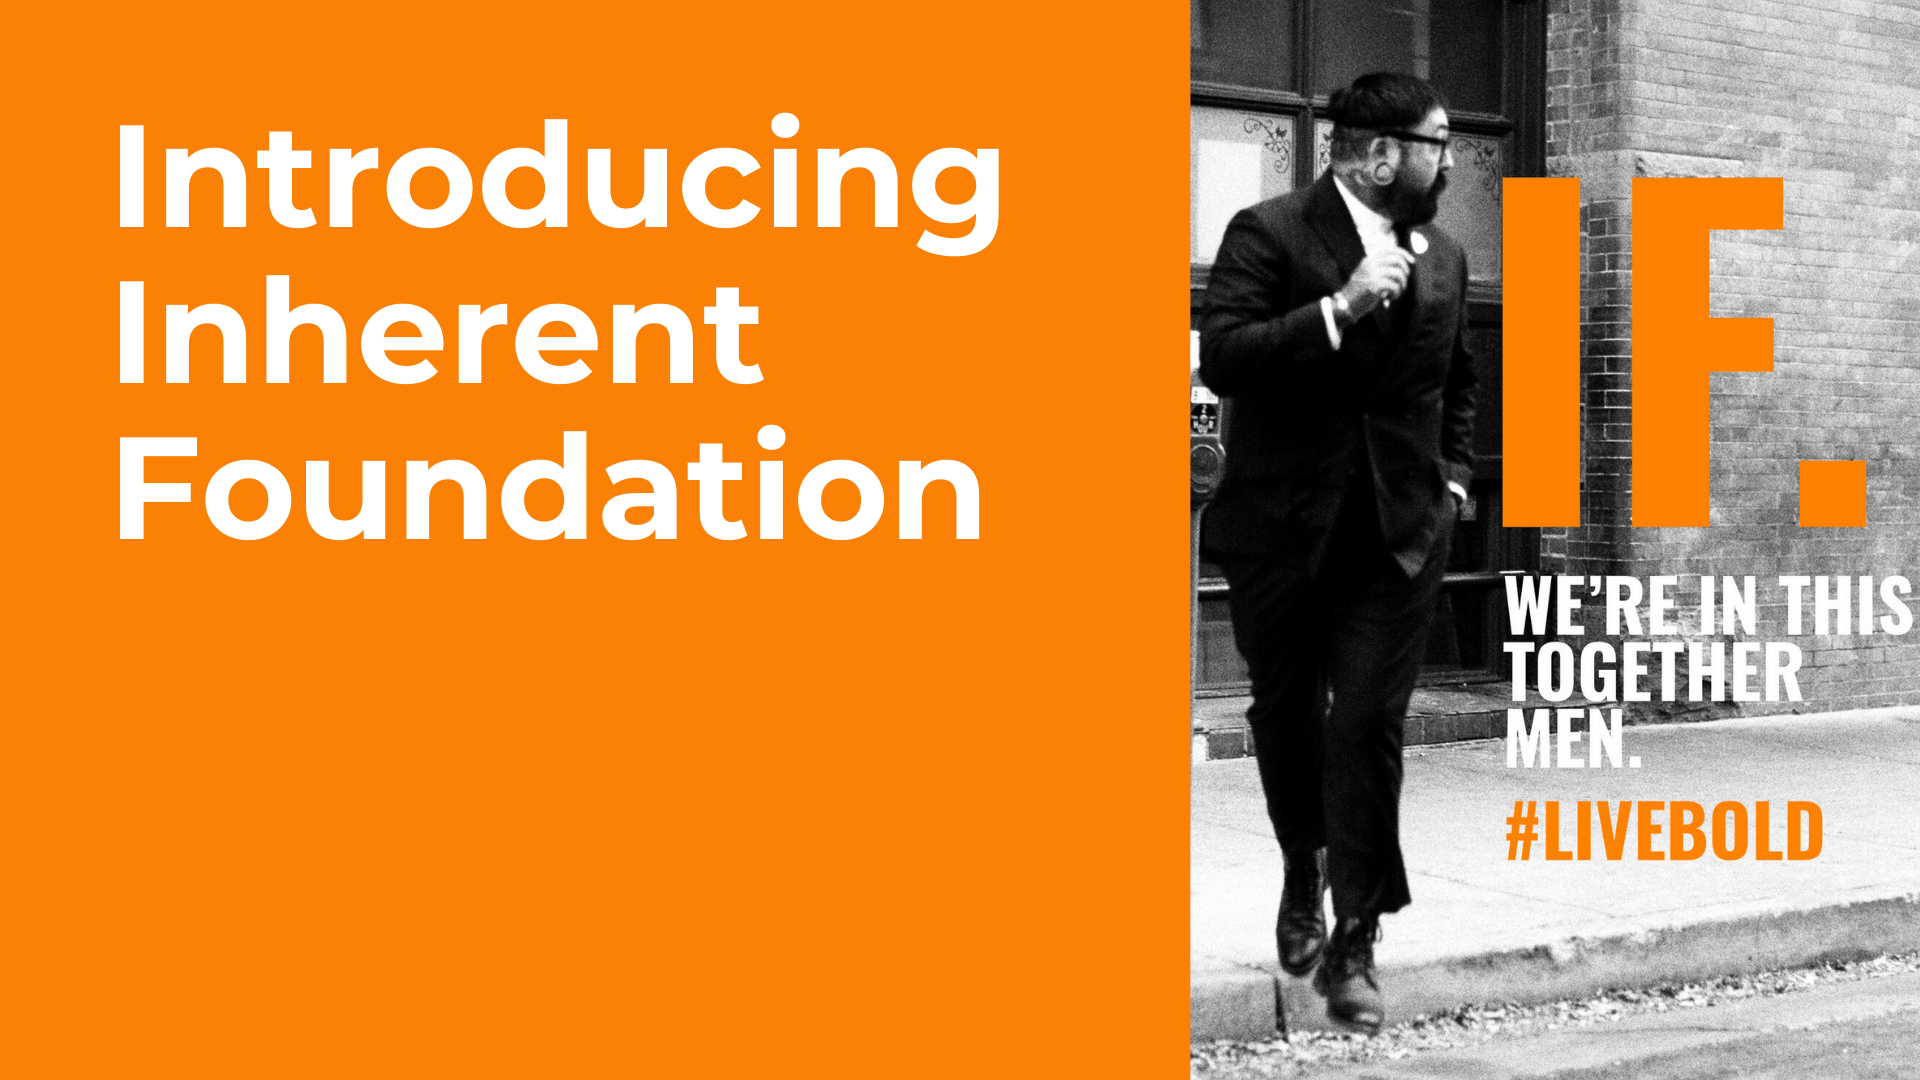 Introducing Inherent Foundation